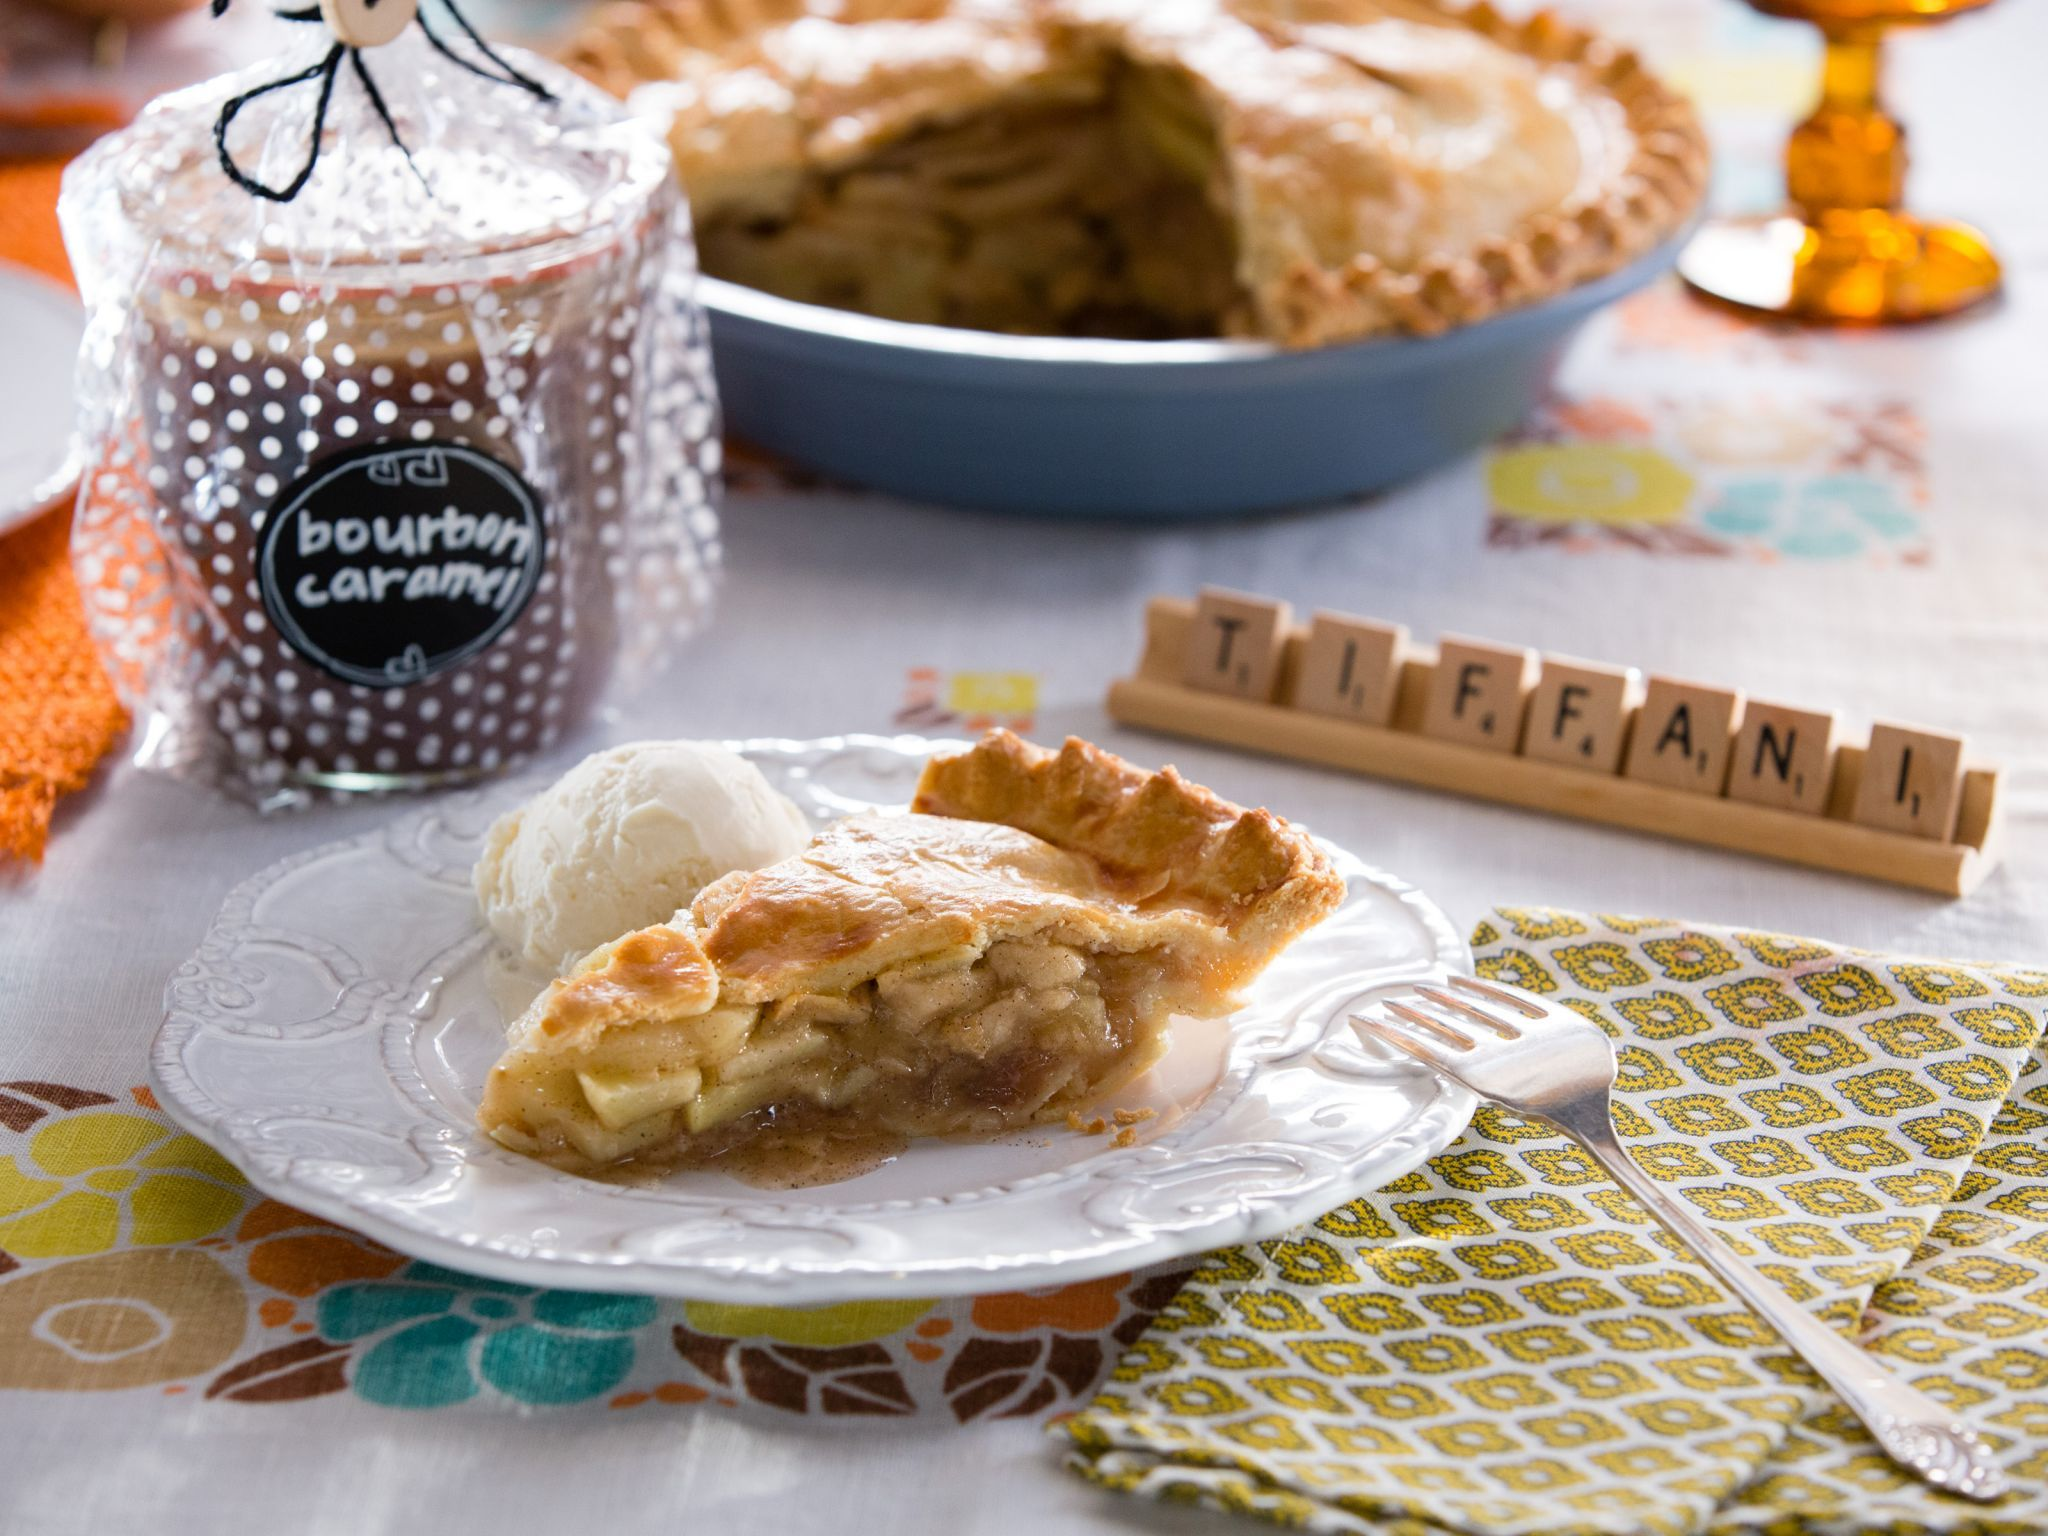 Candied ginger apple pie recipe apple pie recipes pie recipes candied ginger apple pie forumfinder Choice Image